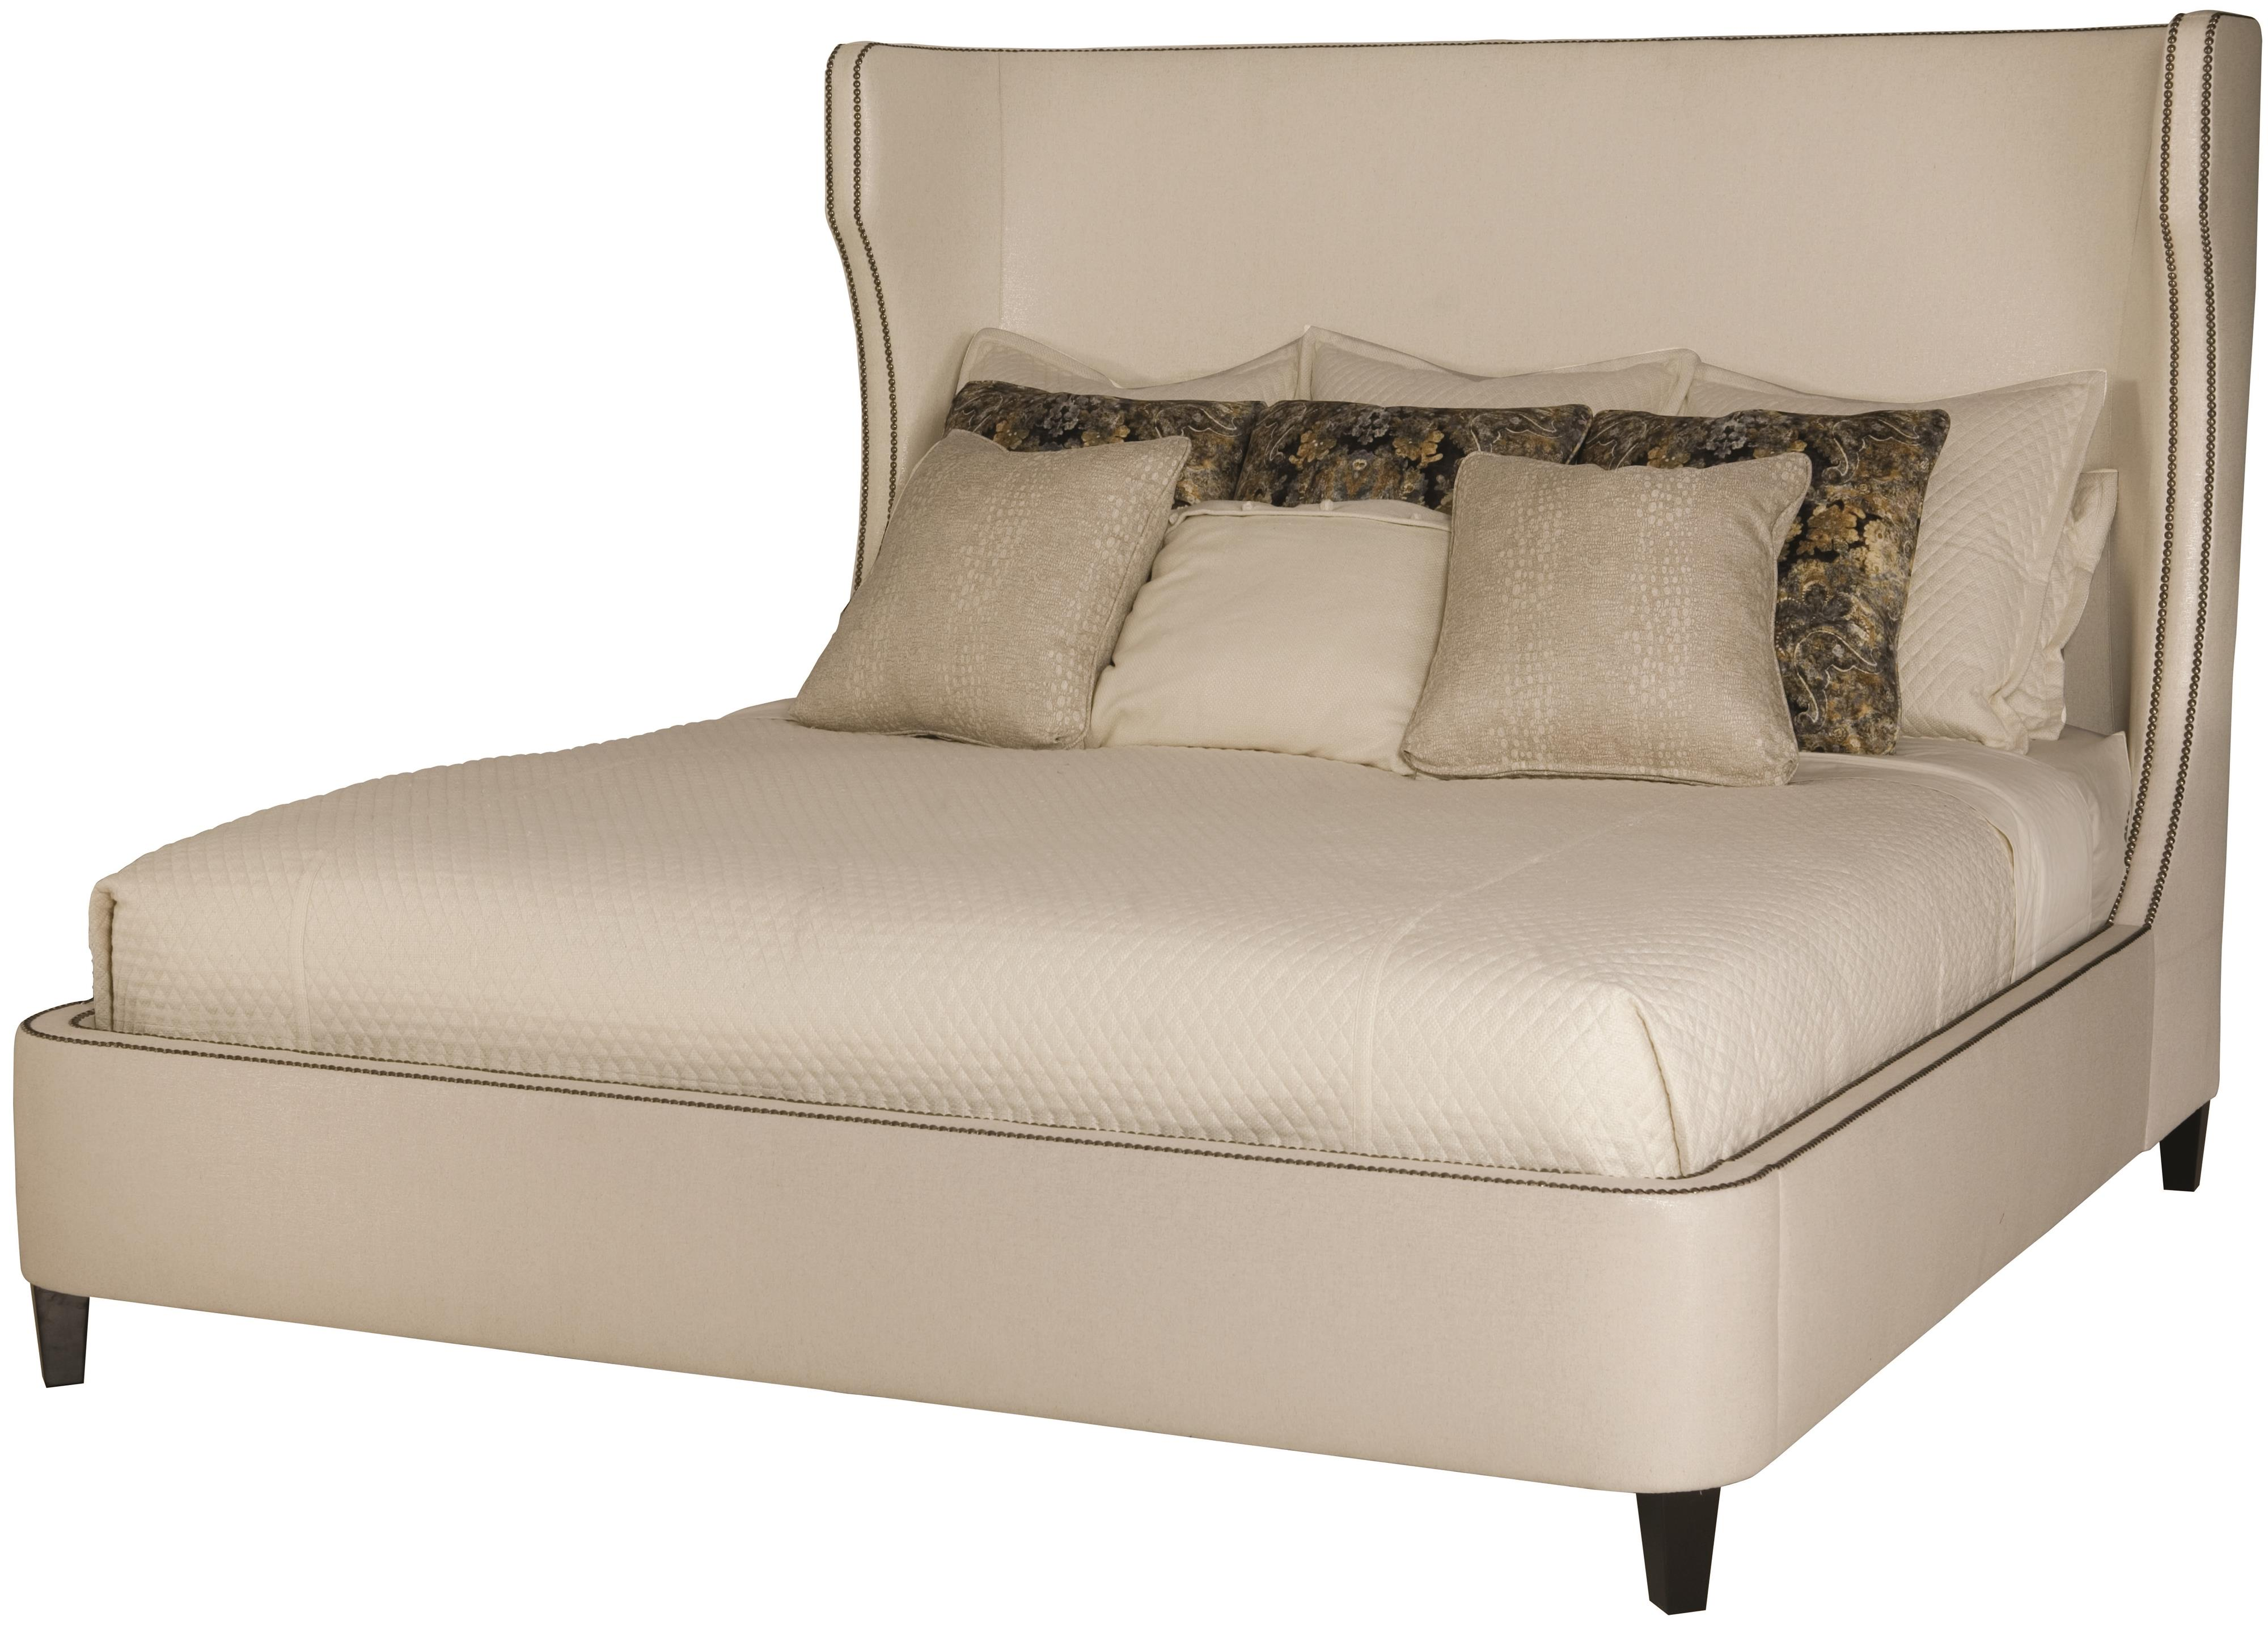 Interiors - Beds Wheeling King Upholstered Bed by Bernhardt at Fisher Home Furnishings